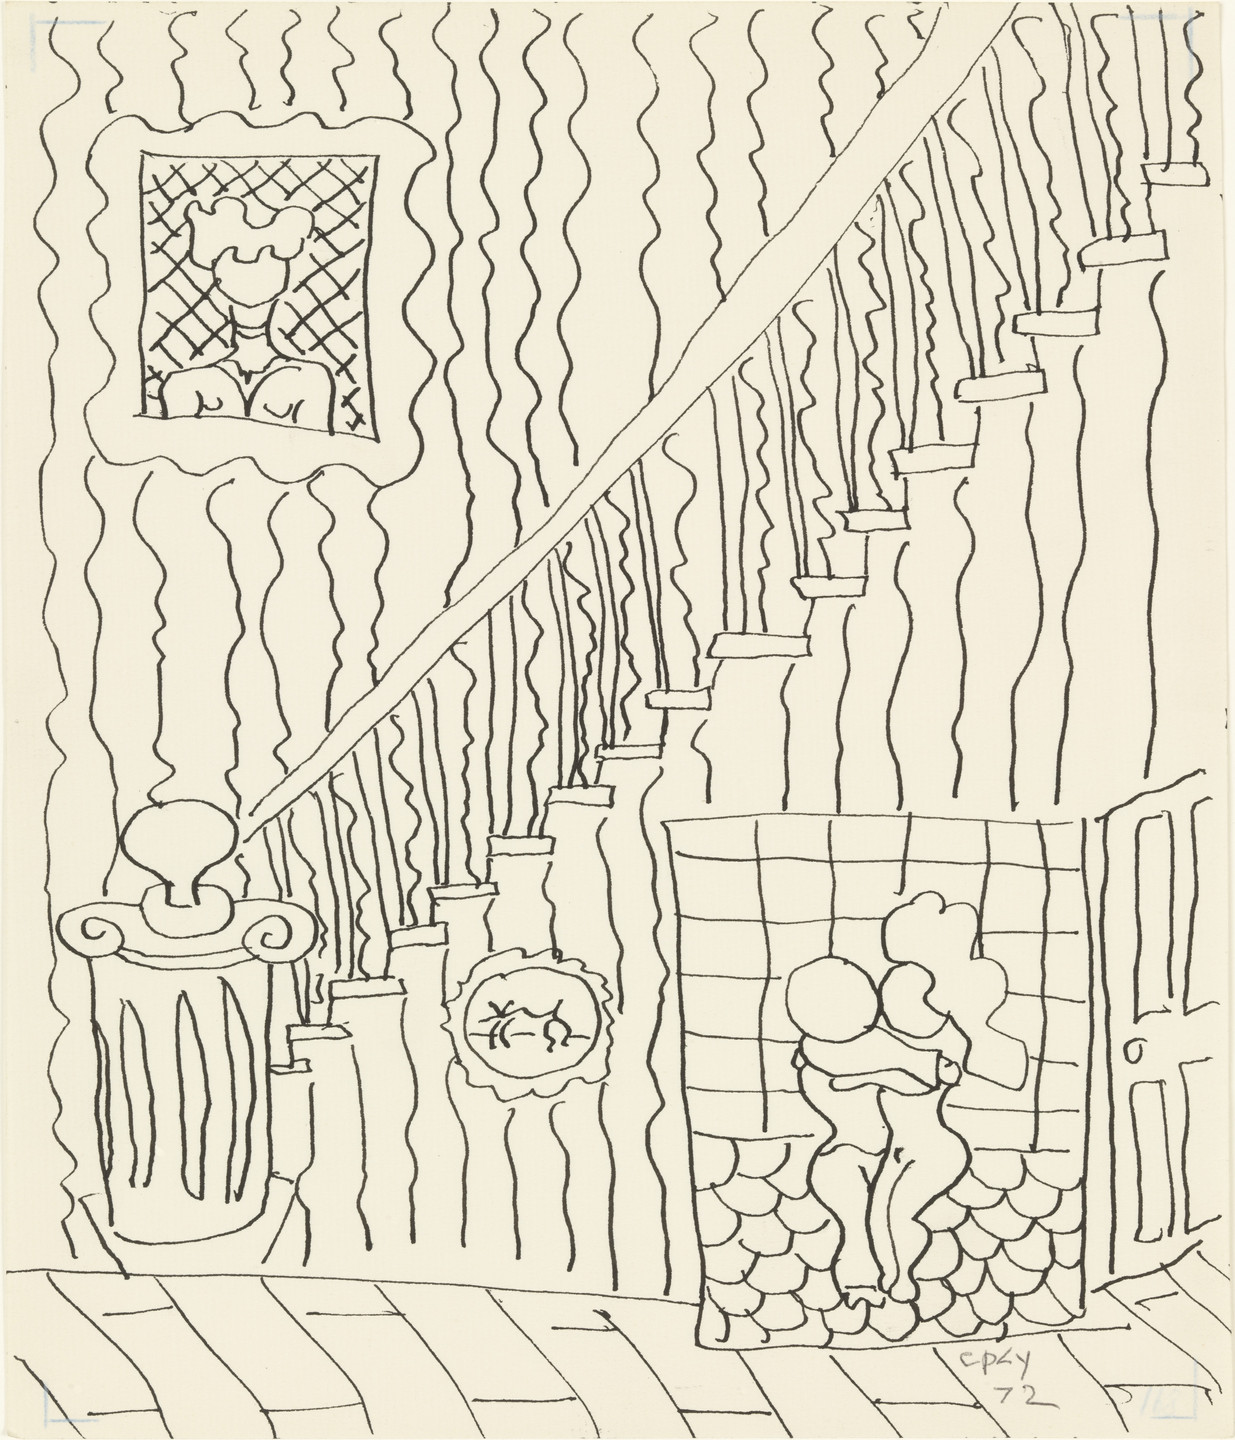 William Copley. Untitled (Staircase). 1972